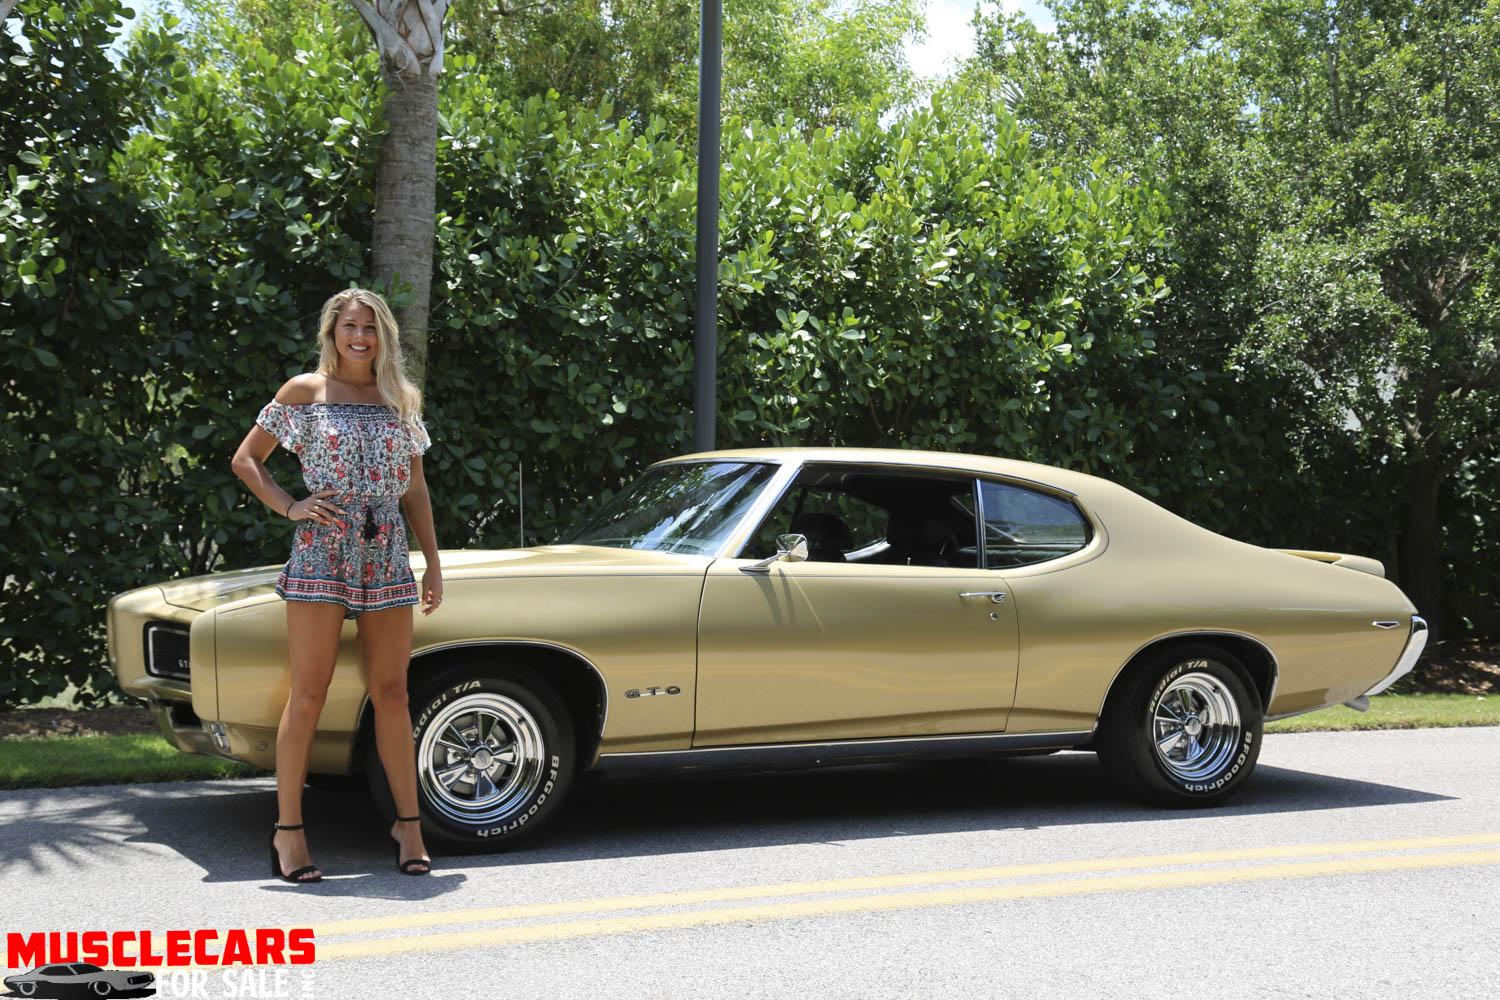 Used 1969 Pontiac Gto For Sale 33 000 Muscle Cars For Sale Inc Stock 1929